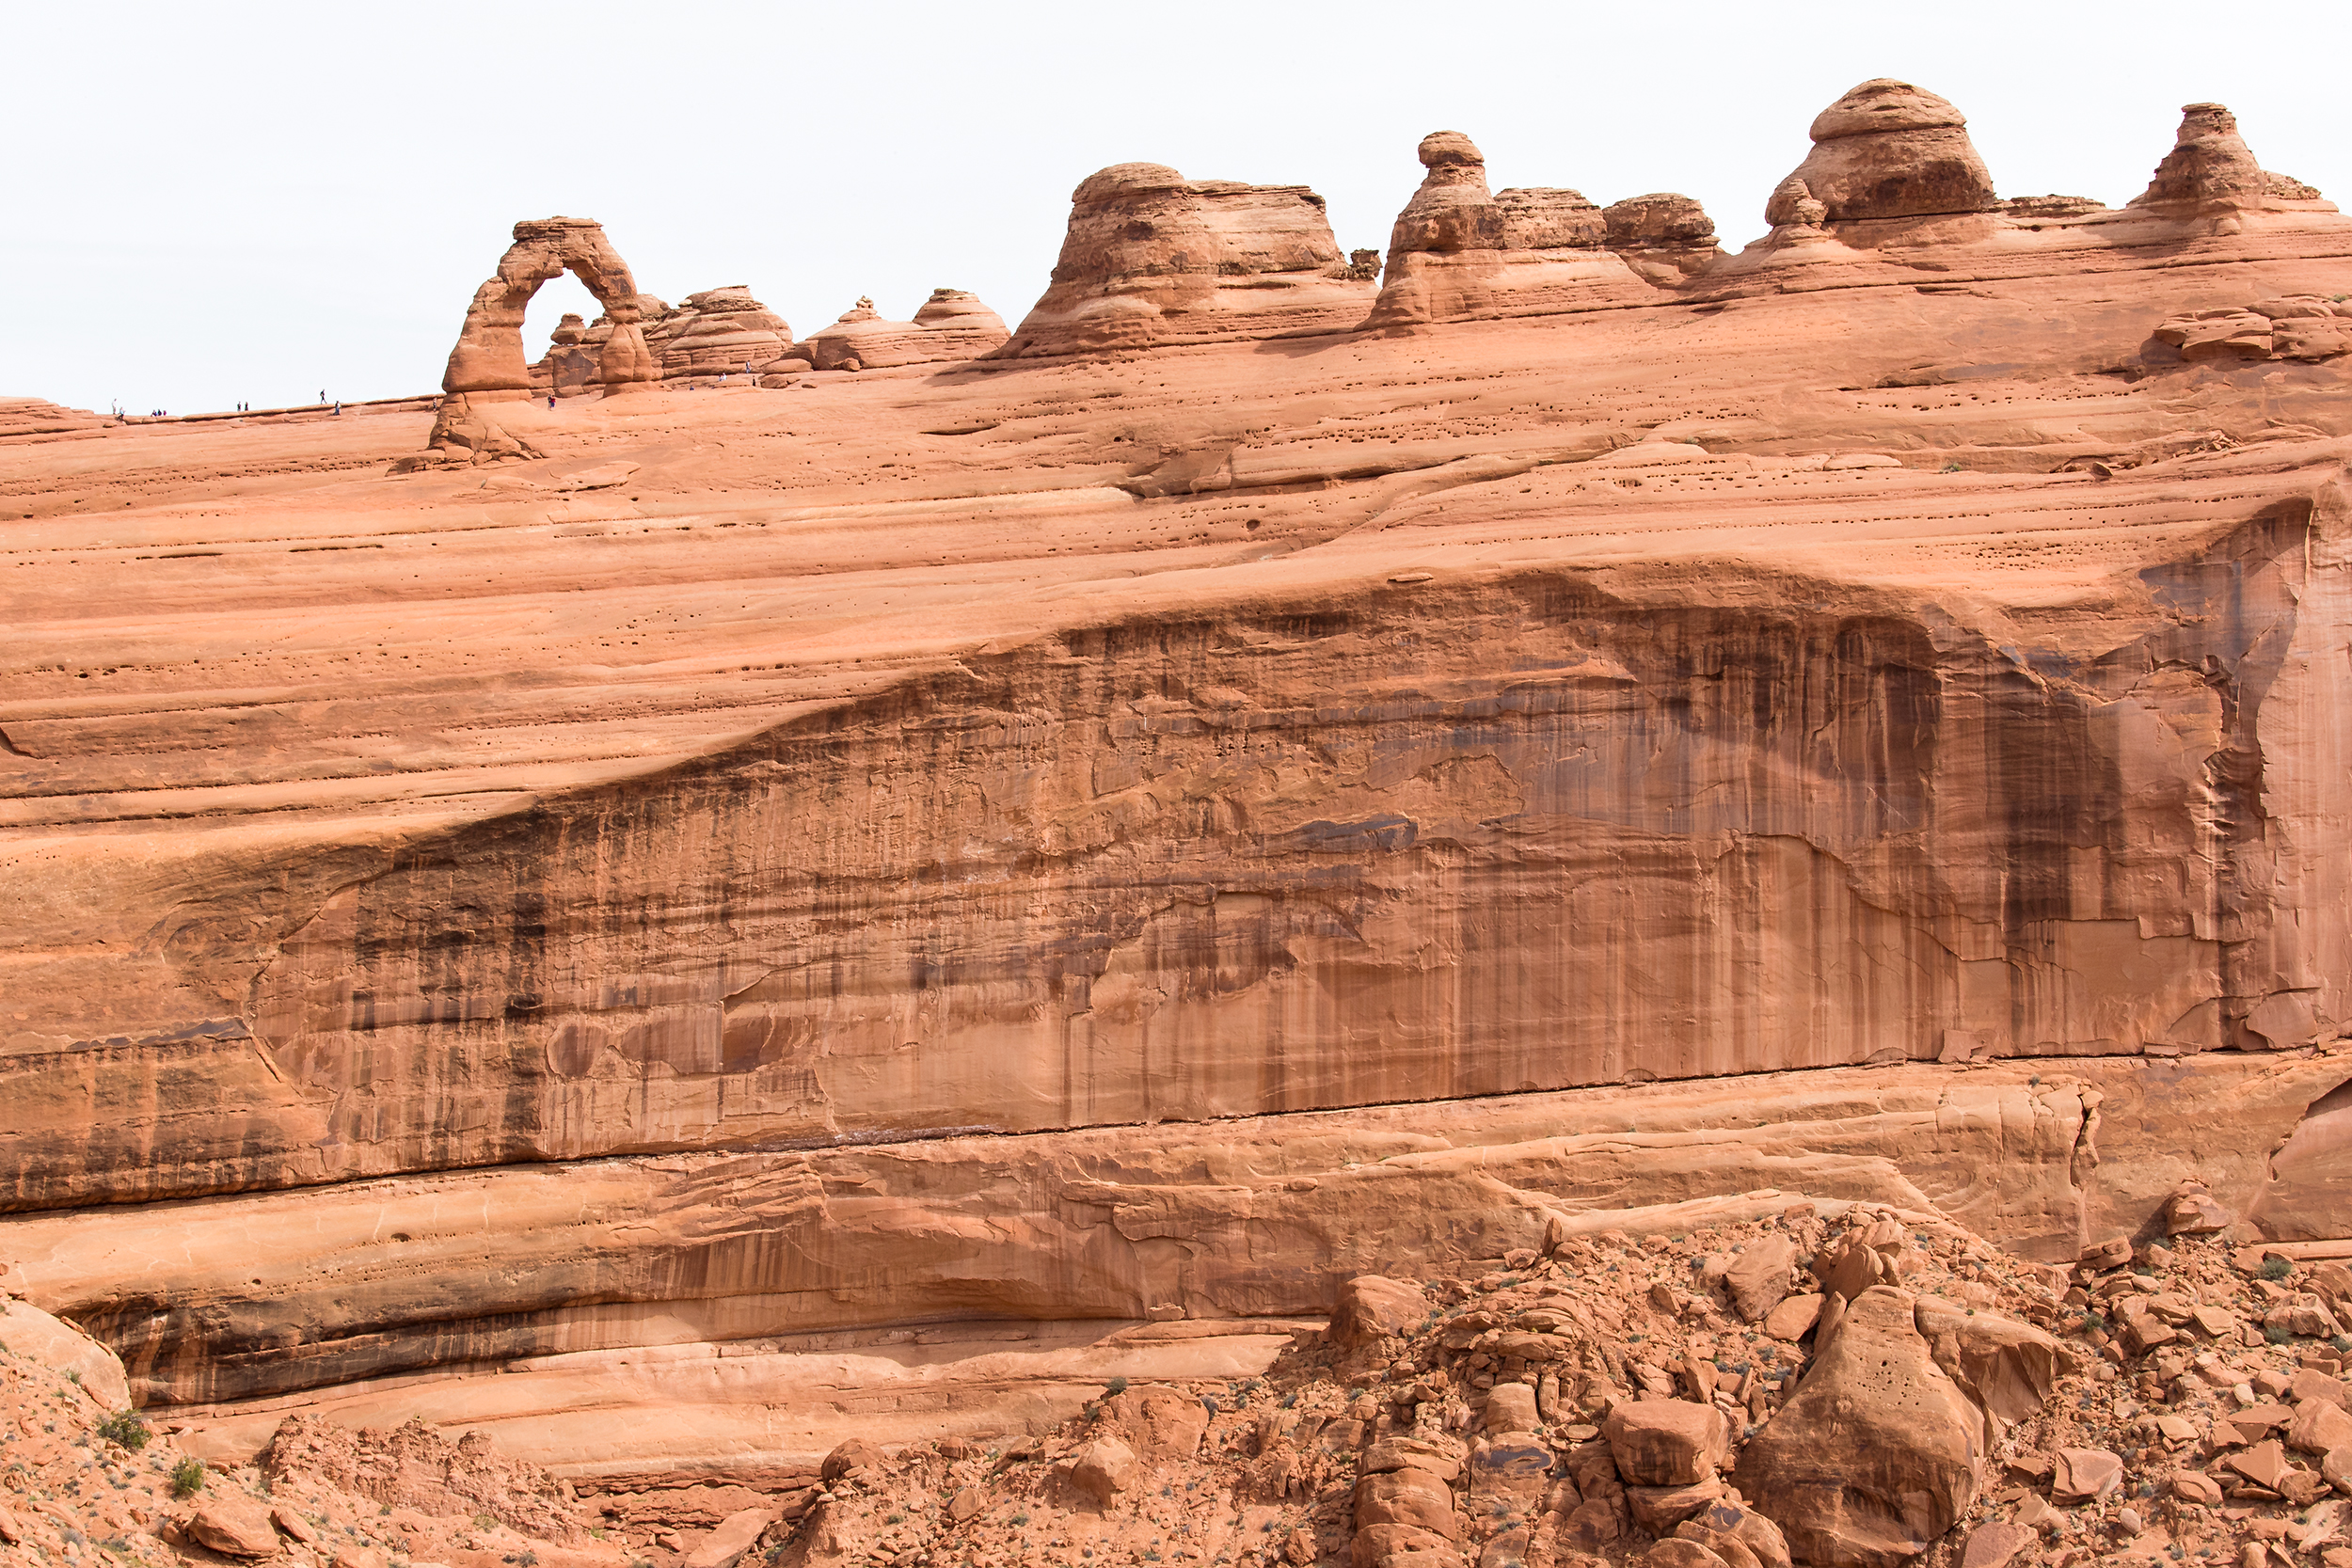 NATLPARKING_travel_rv_adventure_archesnationalpark_2664_2_WB